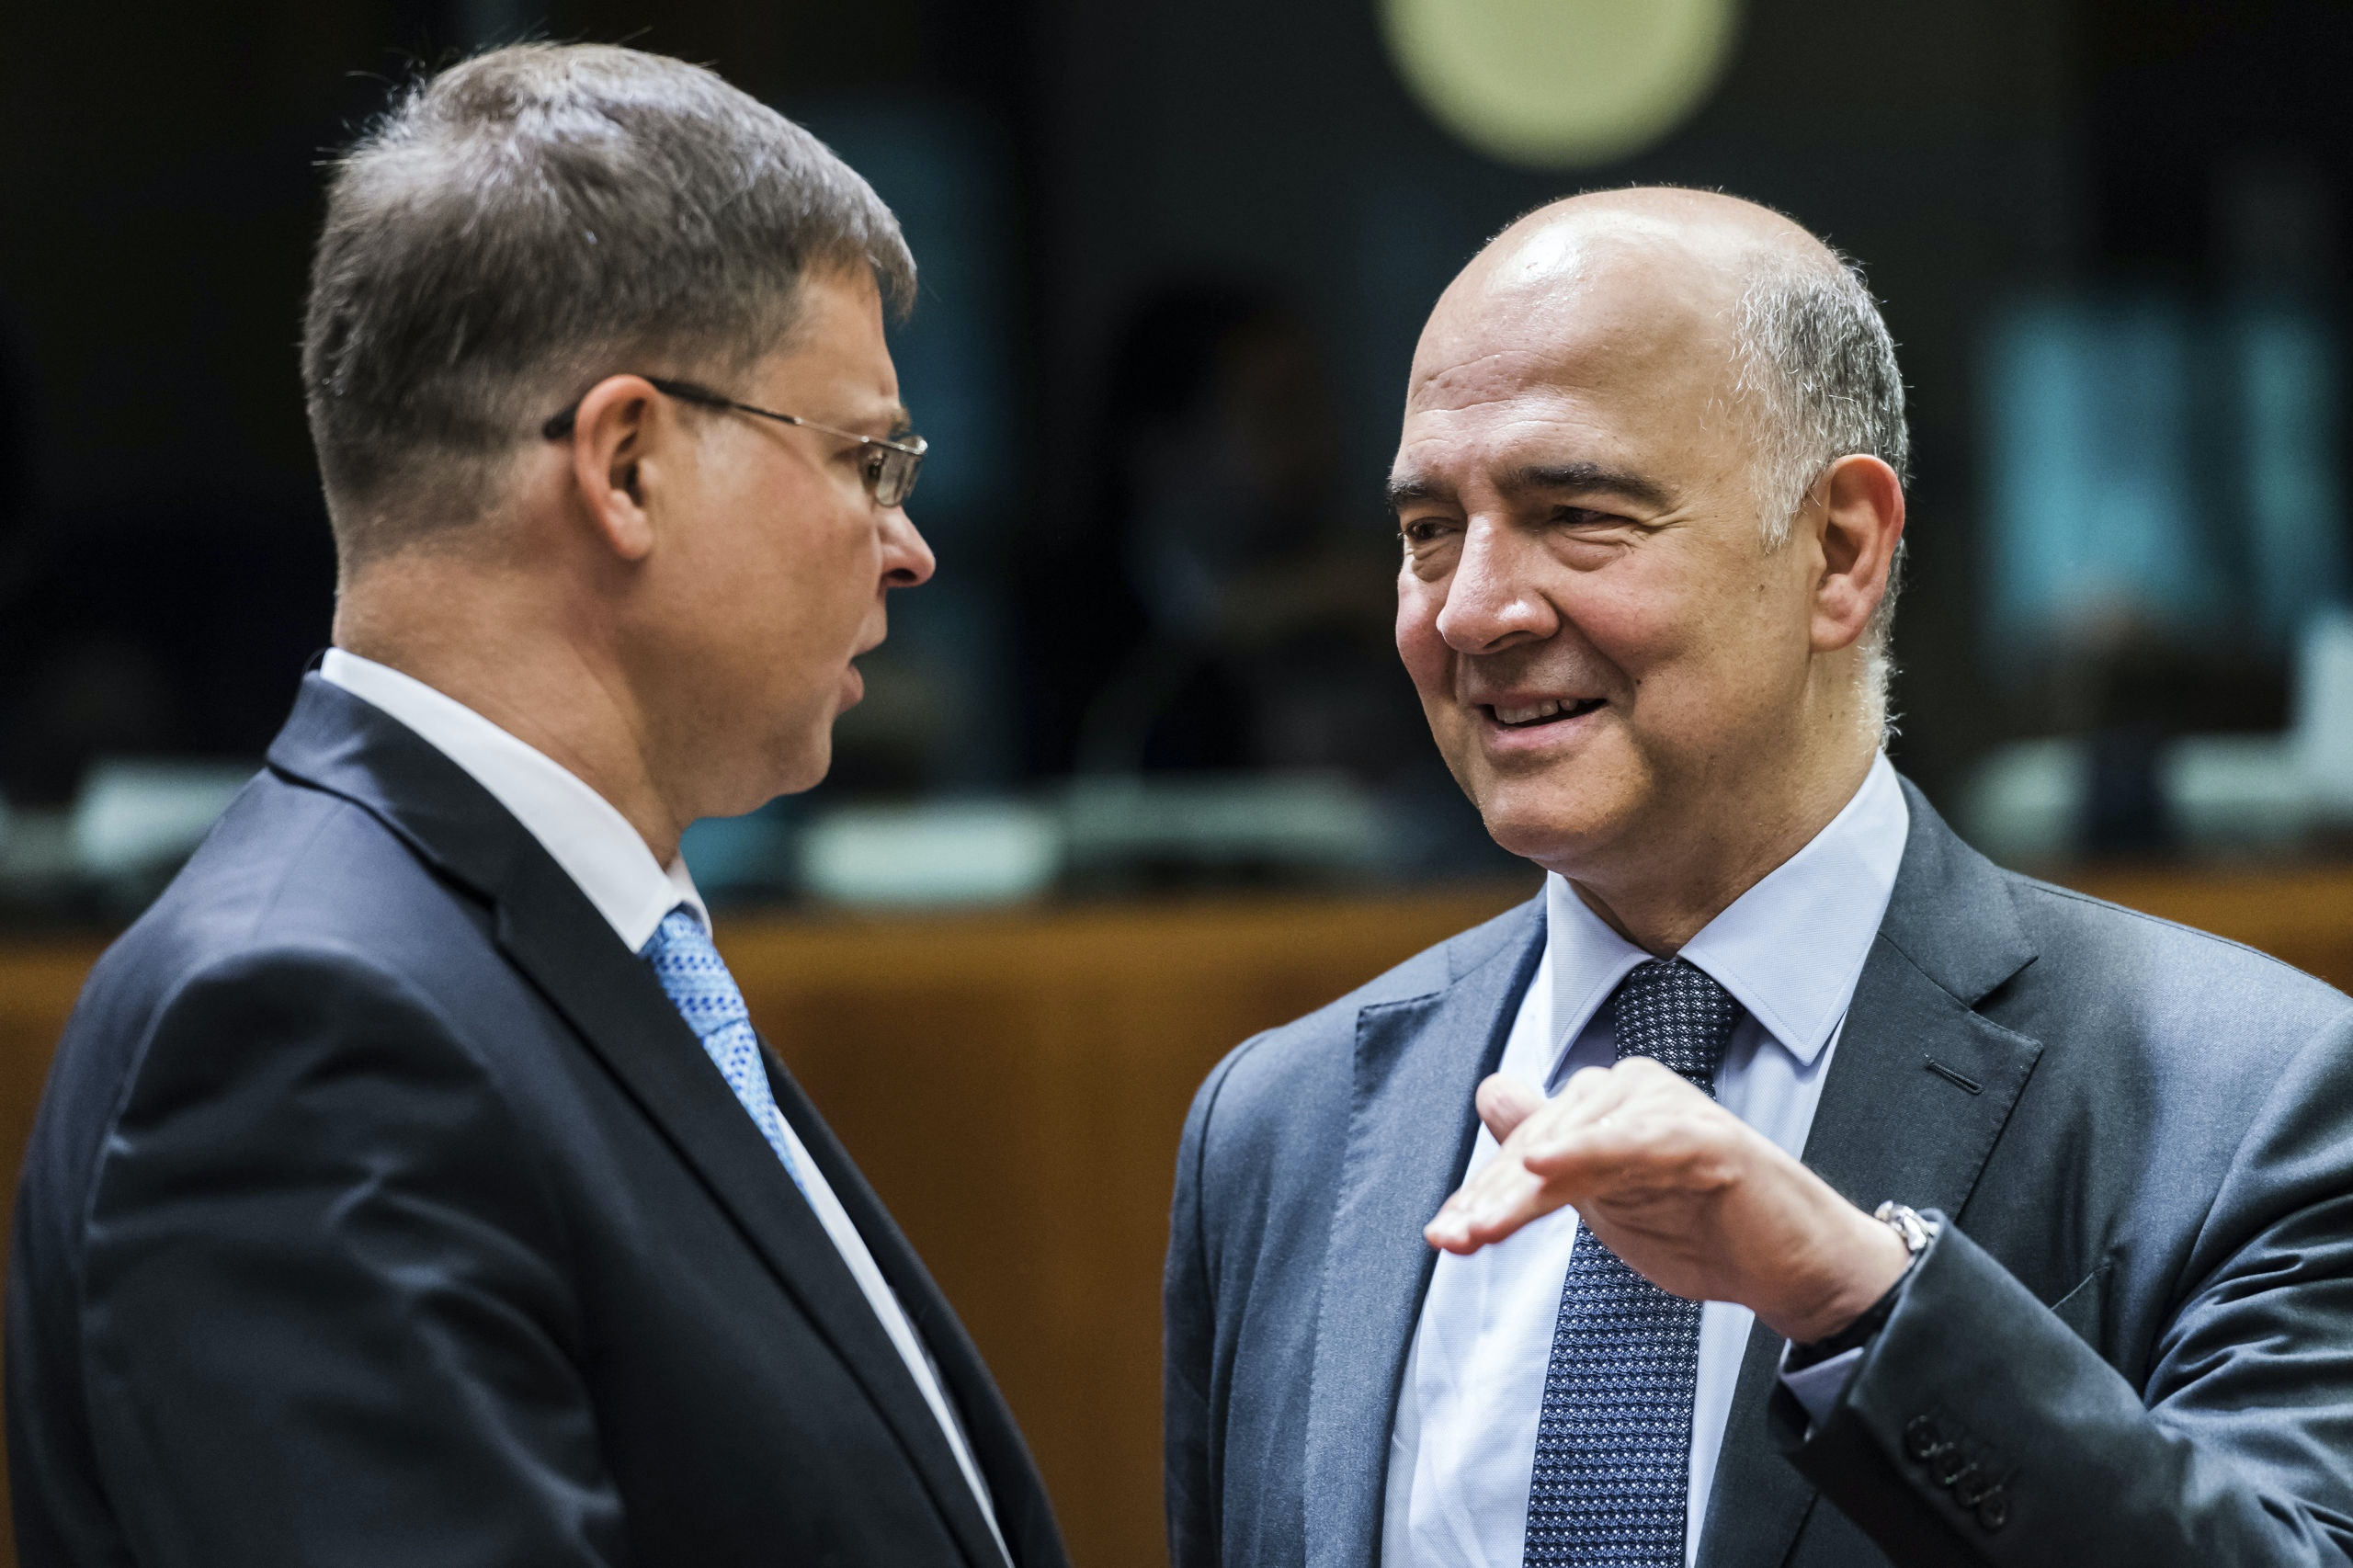 EU Commission Vice-President Valdis Dombrovskis, left, talks with EU Commissioner for Economic and Financial Affairs, Taxation and Customs Pierre Moscovici prior to a meeting of EU finance ministers at the EU Council building in Brussels, Tuesday July 11, 2017. (AP Photo/Geert Vanden Wijngaert)